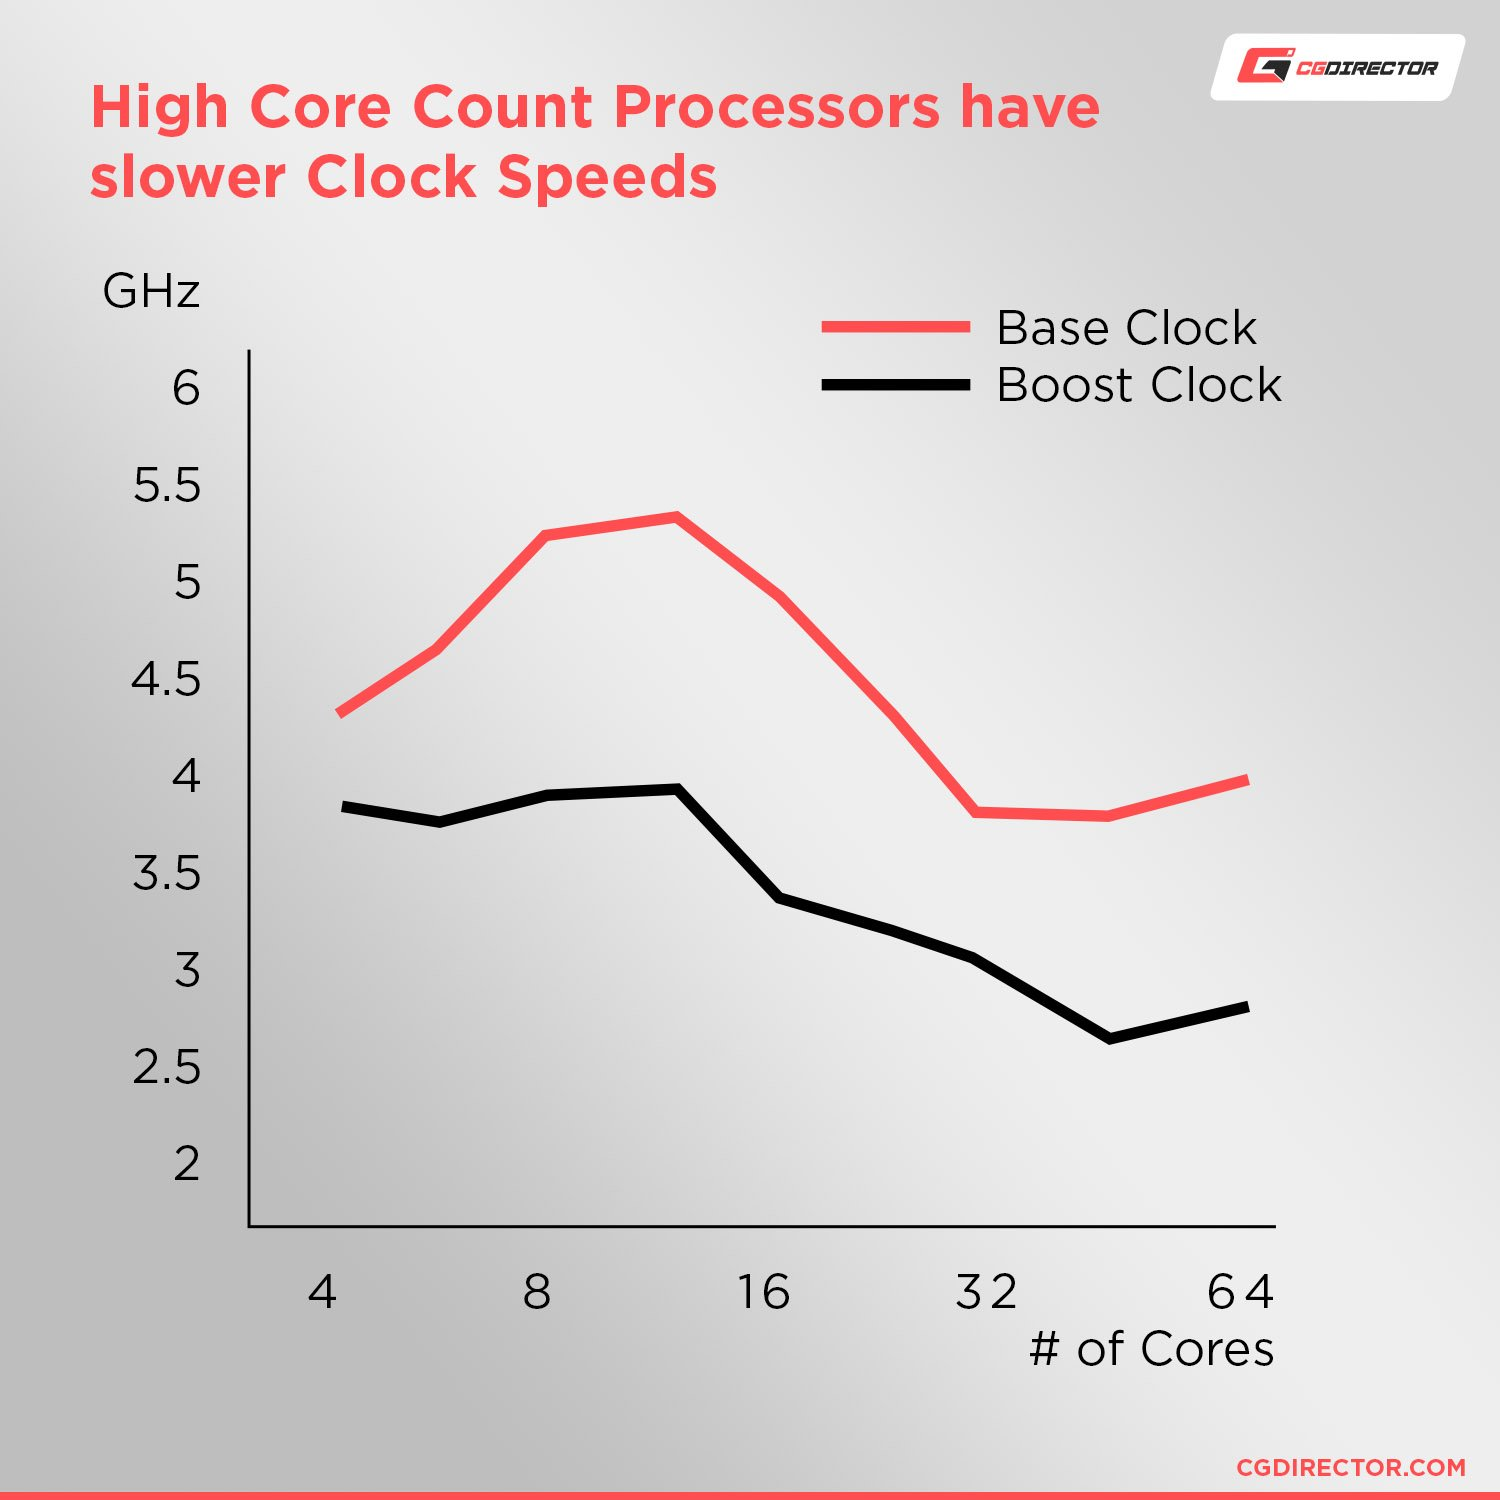 High Core Count Processors have slower clockspeeds